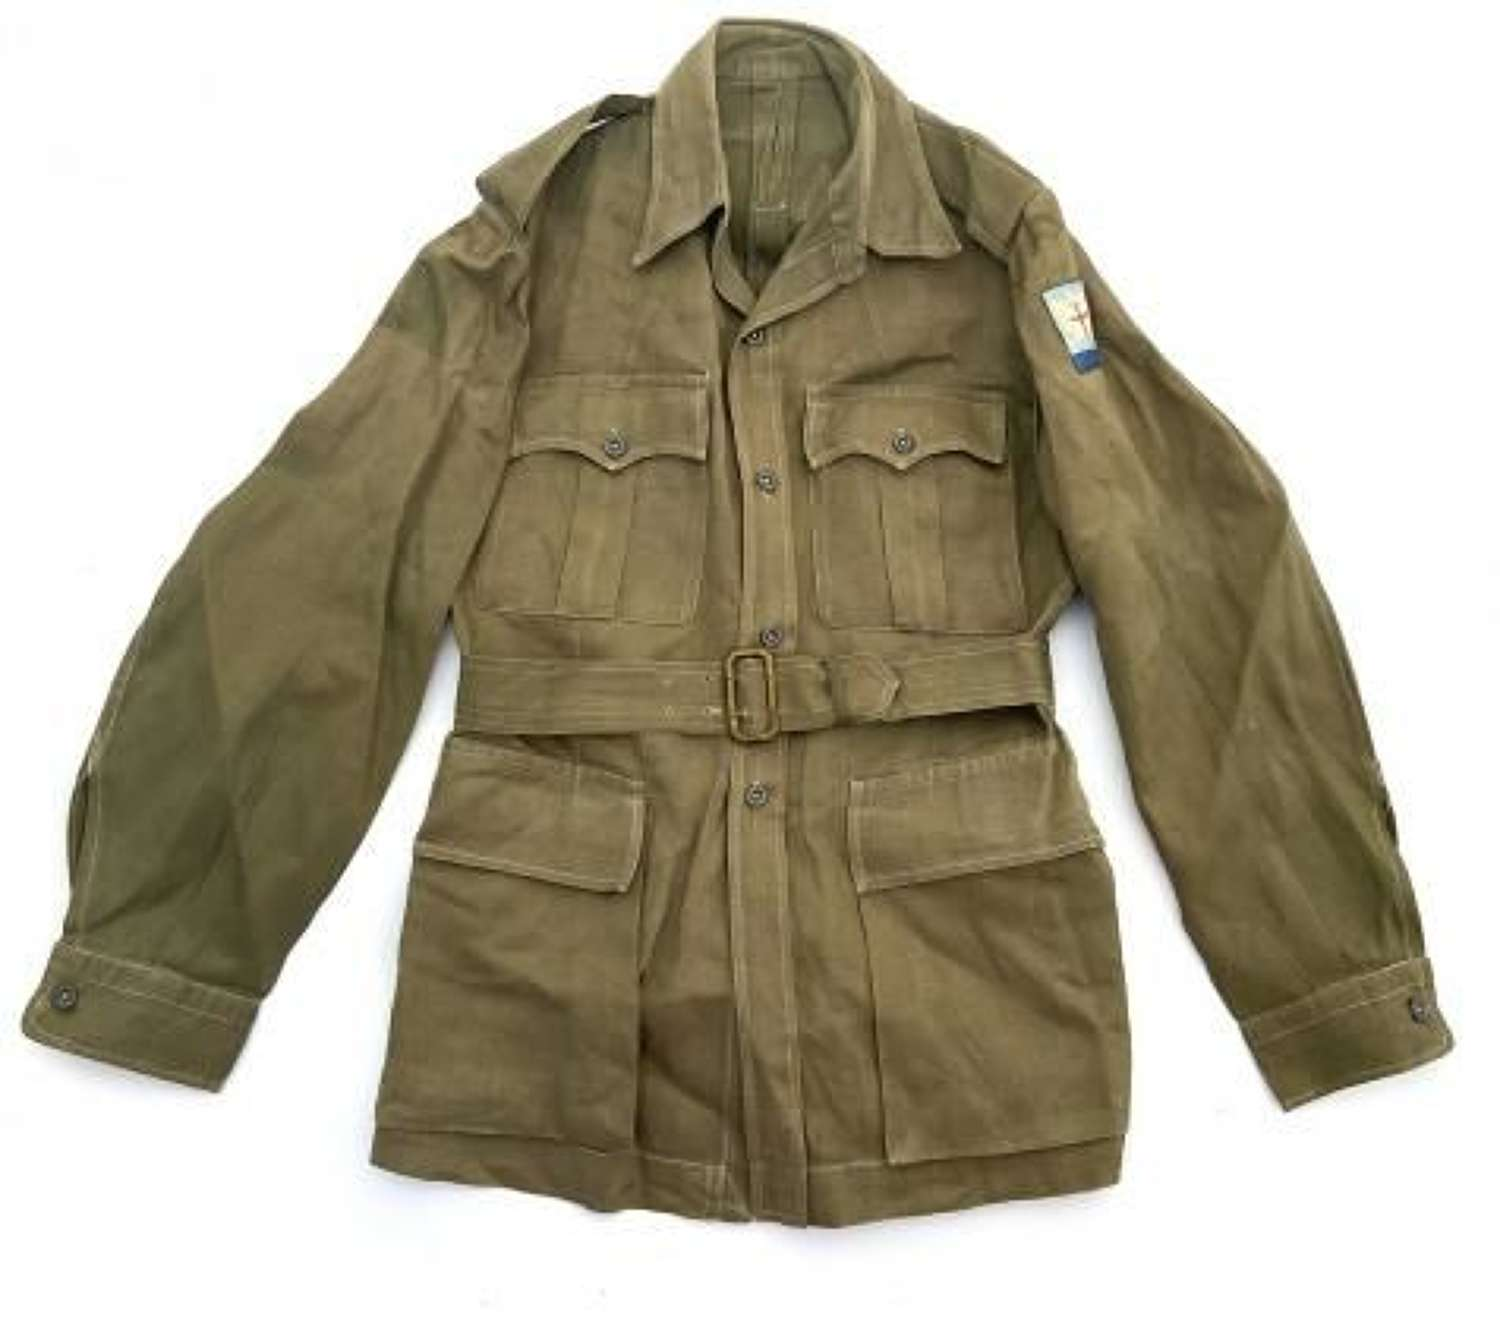 Original British Jungle Green Bush Jacket - Allied Land Forces South East Asia